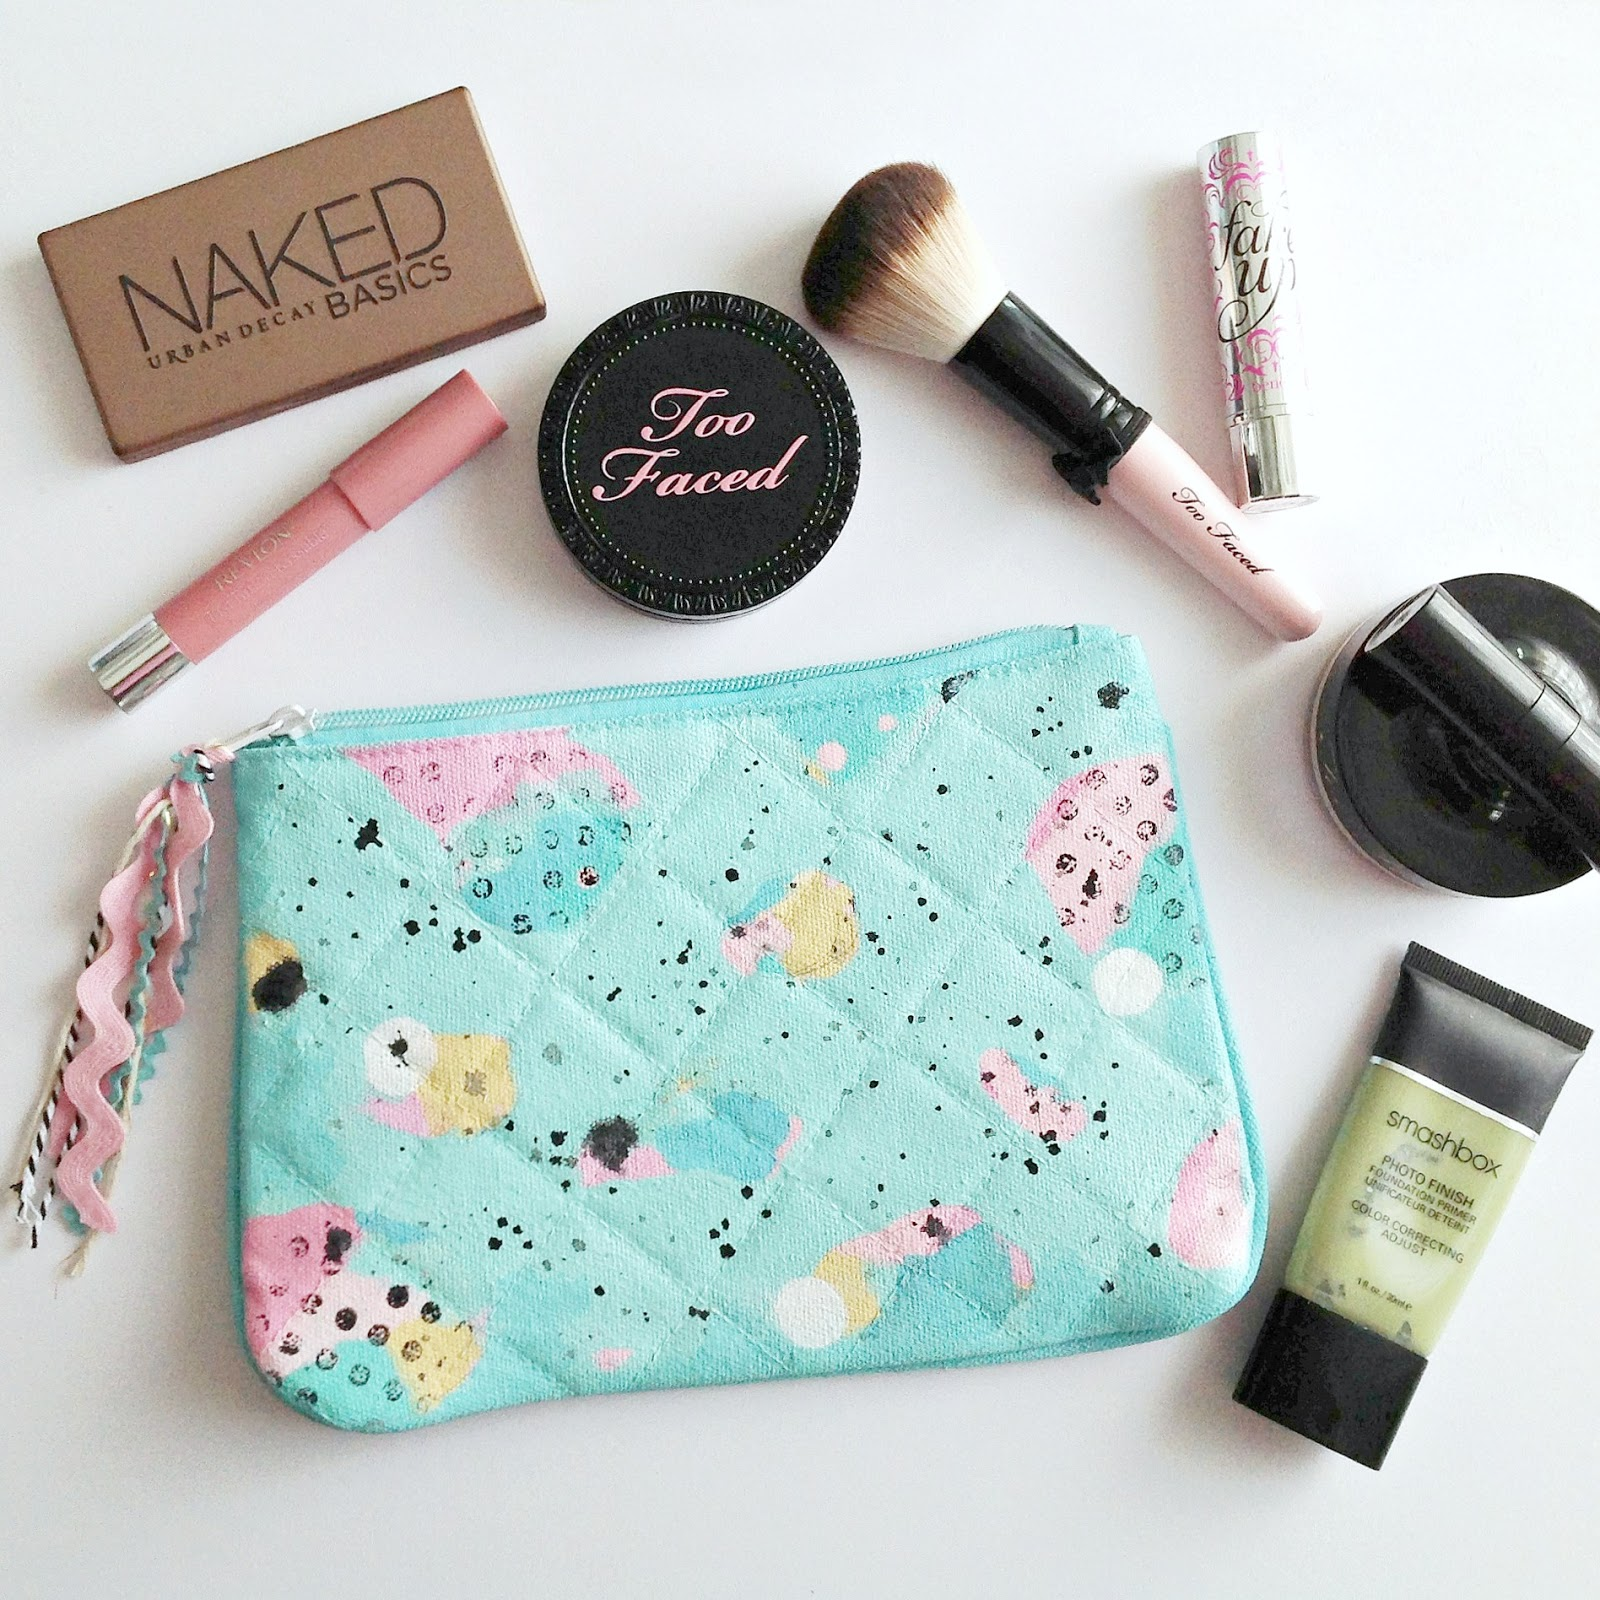 Pro Makeup Artists know that organization is the key to on the job efficiency. Camera Ready Cosmetics carries professional makeup bags and cases to keep your tools organized, easy to pack and easy to carry. Organize like a pro!